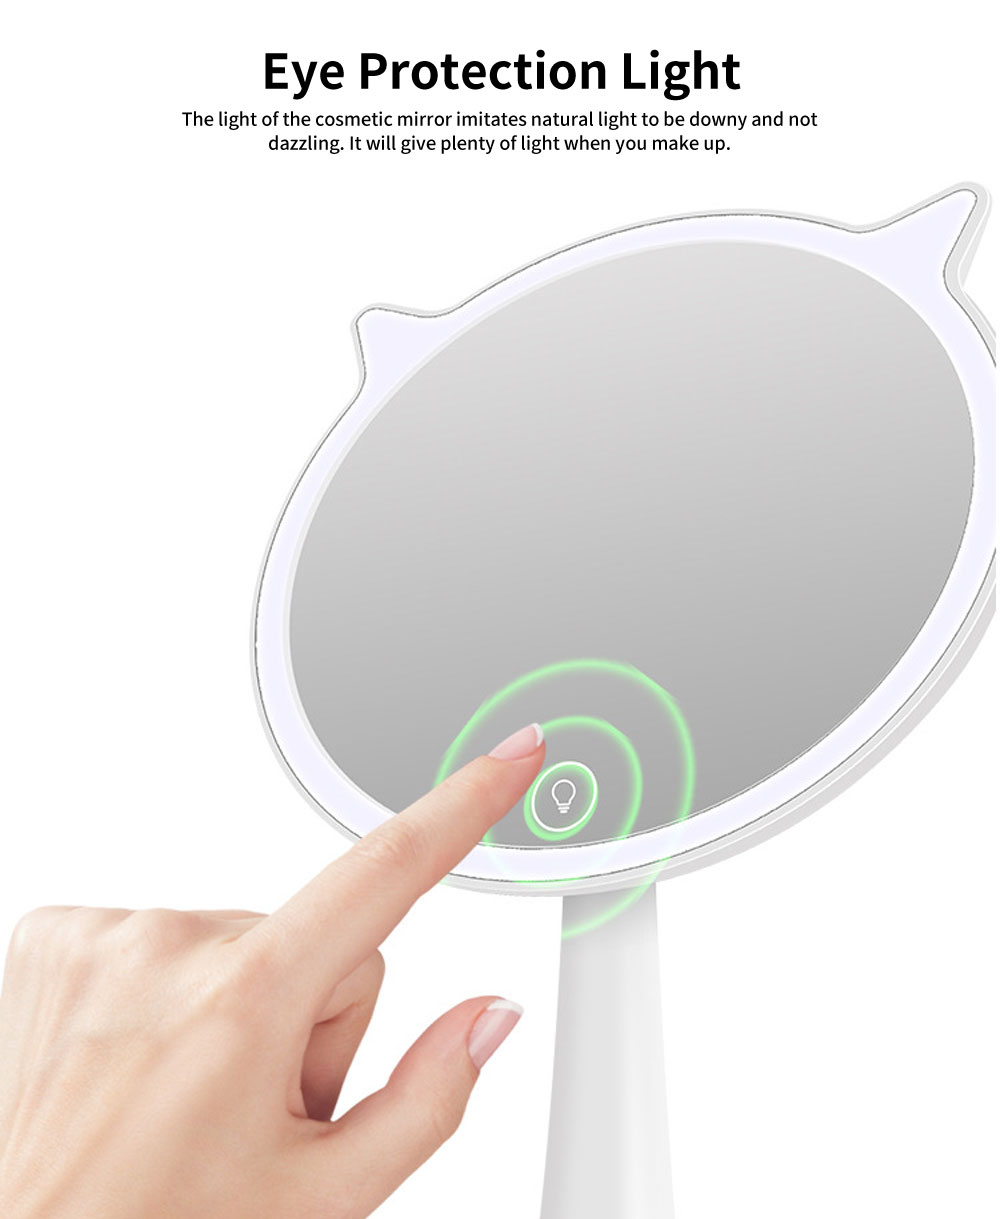 LED Makeup Mirror, Cat Cosmetic Mirror, Adjustable USB Charger Mirror, One-Sided Rectangle Mirror, Portable Desk Mirror for Make Up 2